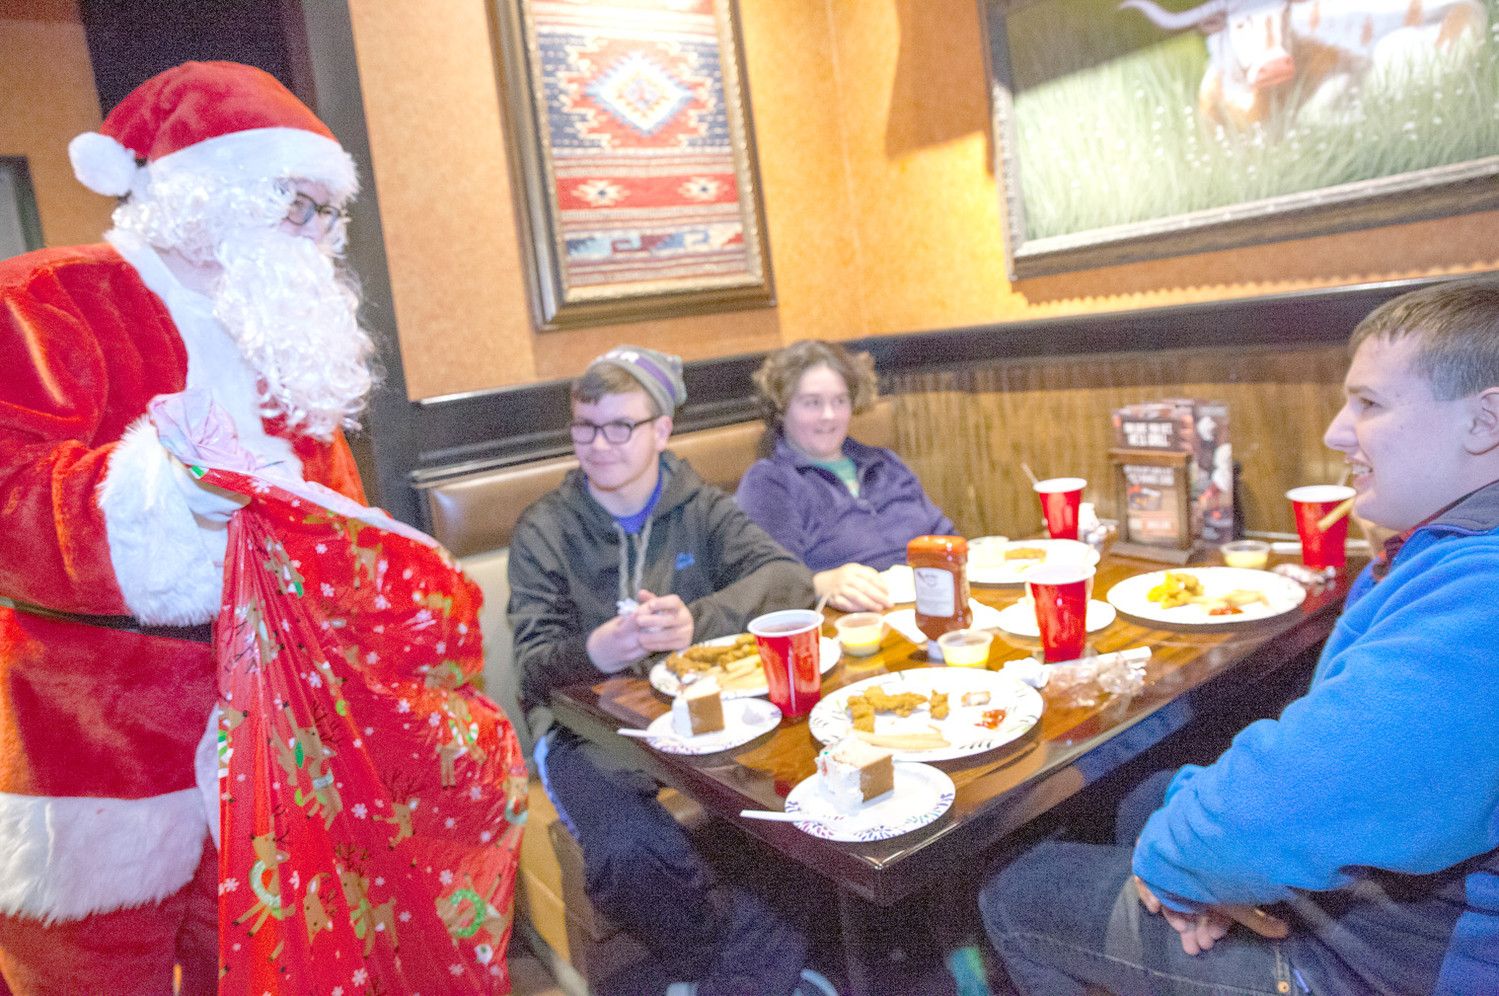 SANTA CLAUS made a surprise visit at LongHorn Steakhouse on Friday to cap off the wonderful meal that the children from the CHS special services department enjoyed.  Santa passed out candy to each and every table during his visit.  Pictured from left are Santa, Luke, Adeline and Connor.